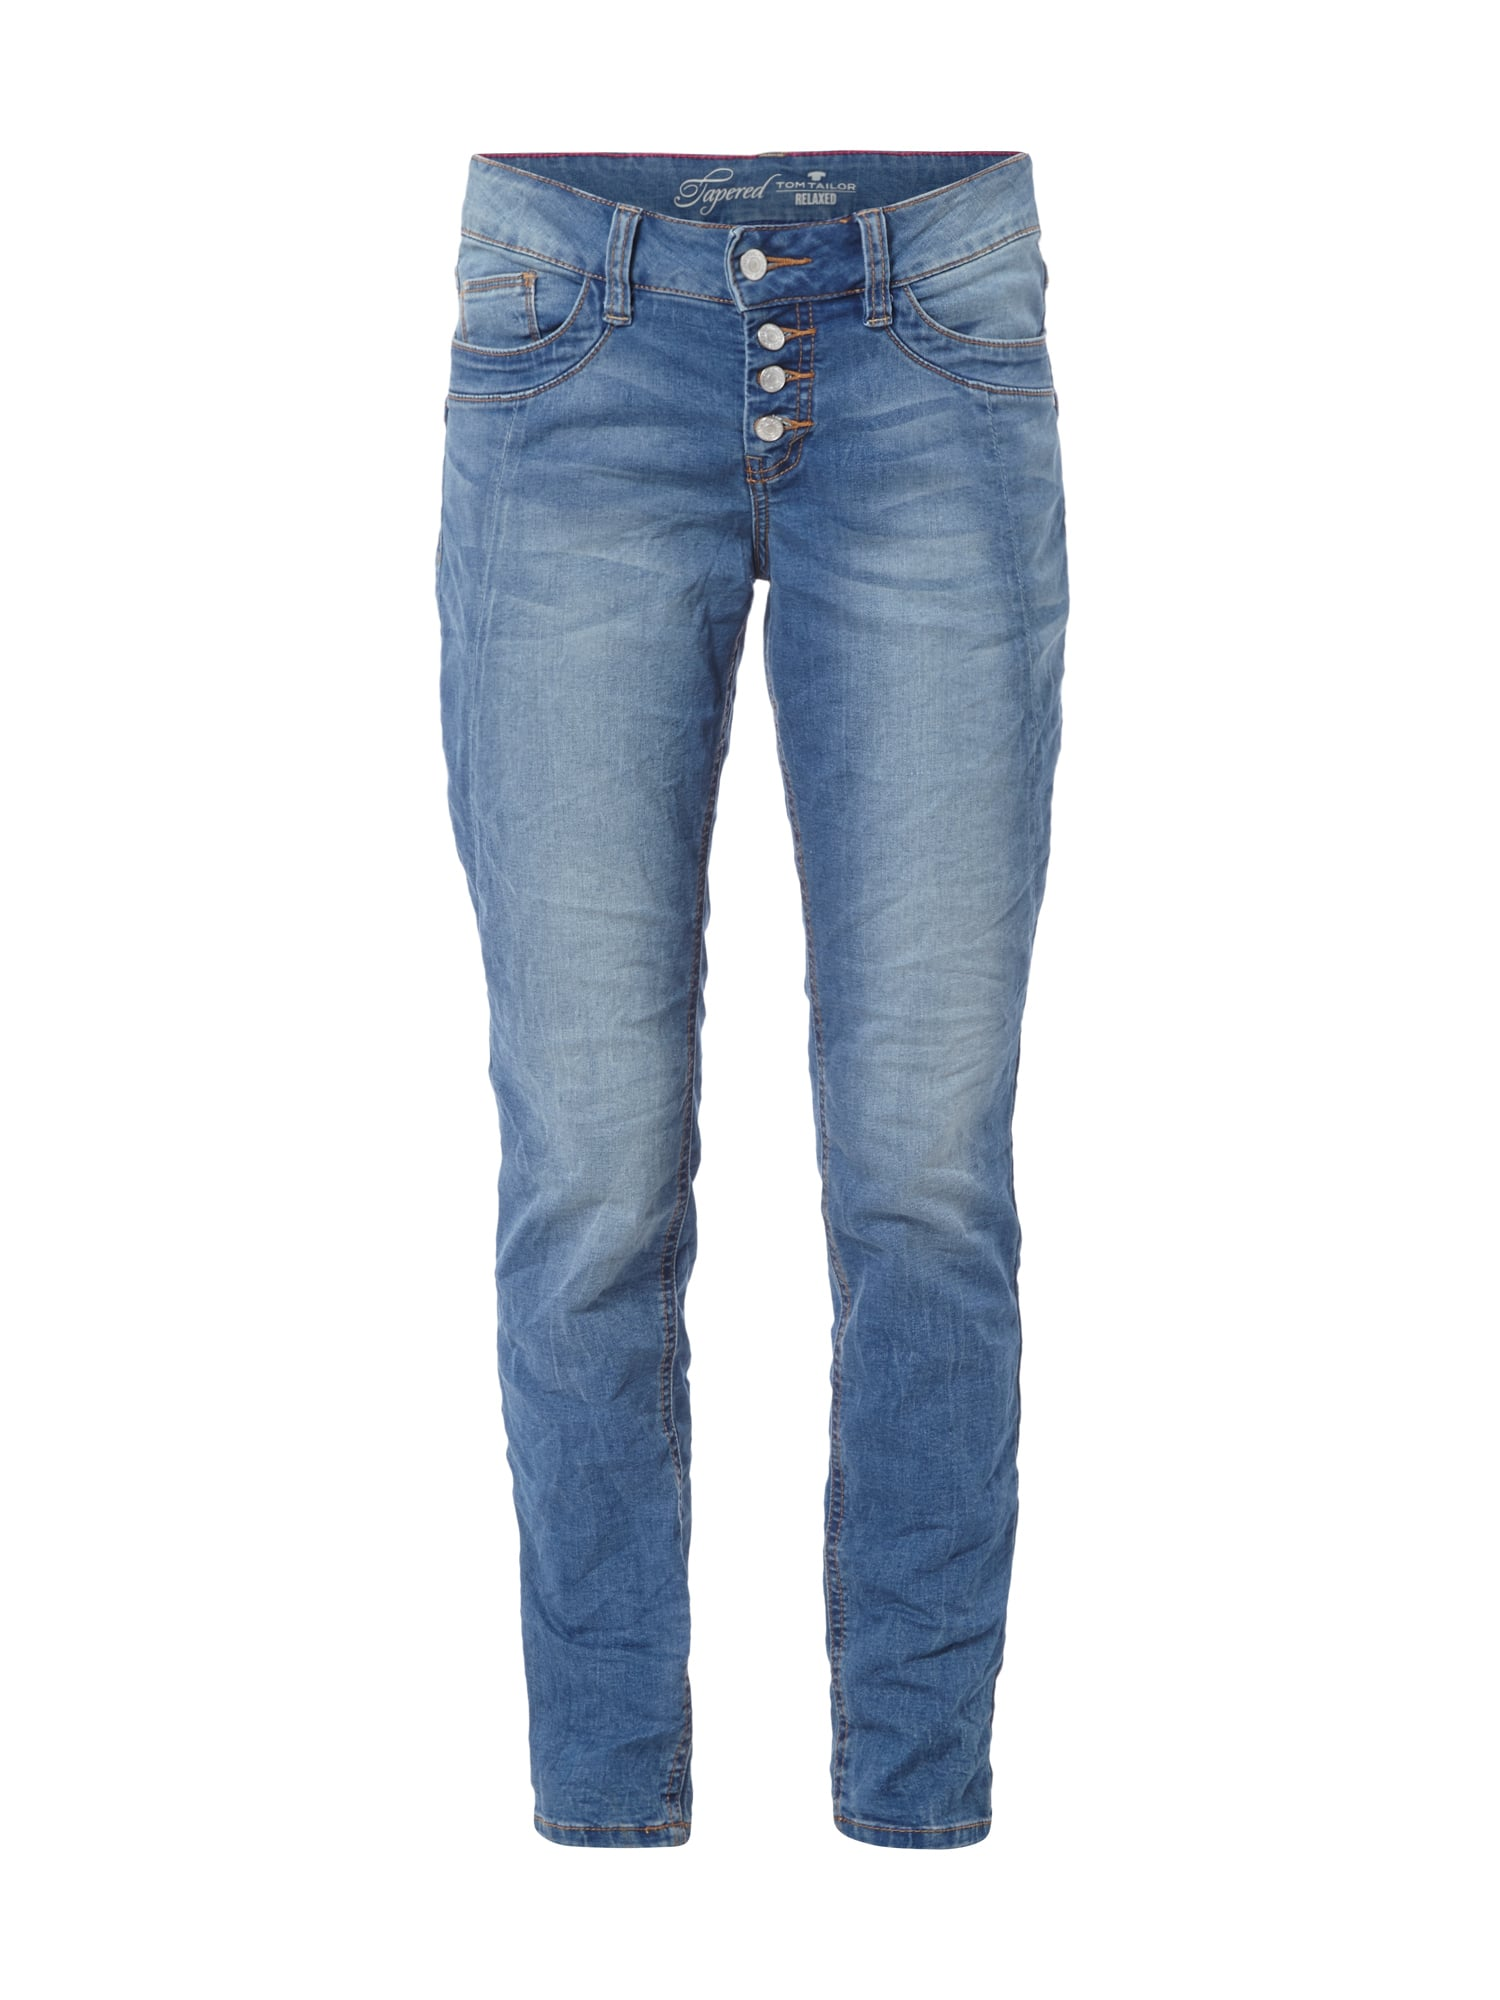 TOMTAILOR Relaxed Tapered Jeans mit CrinkleEffekt in